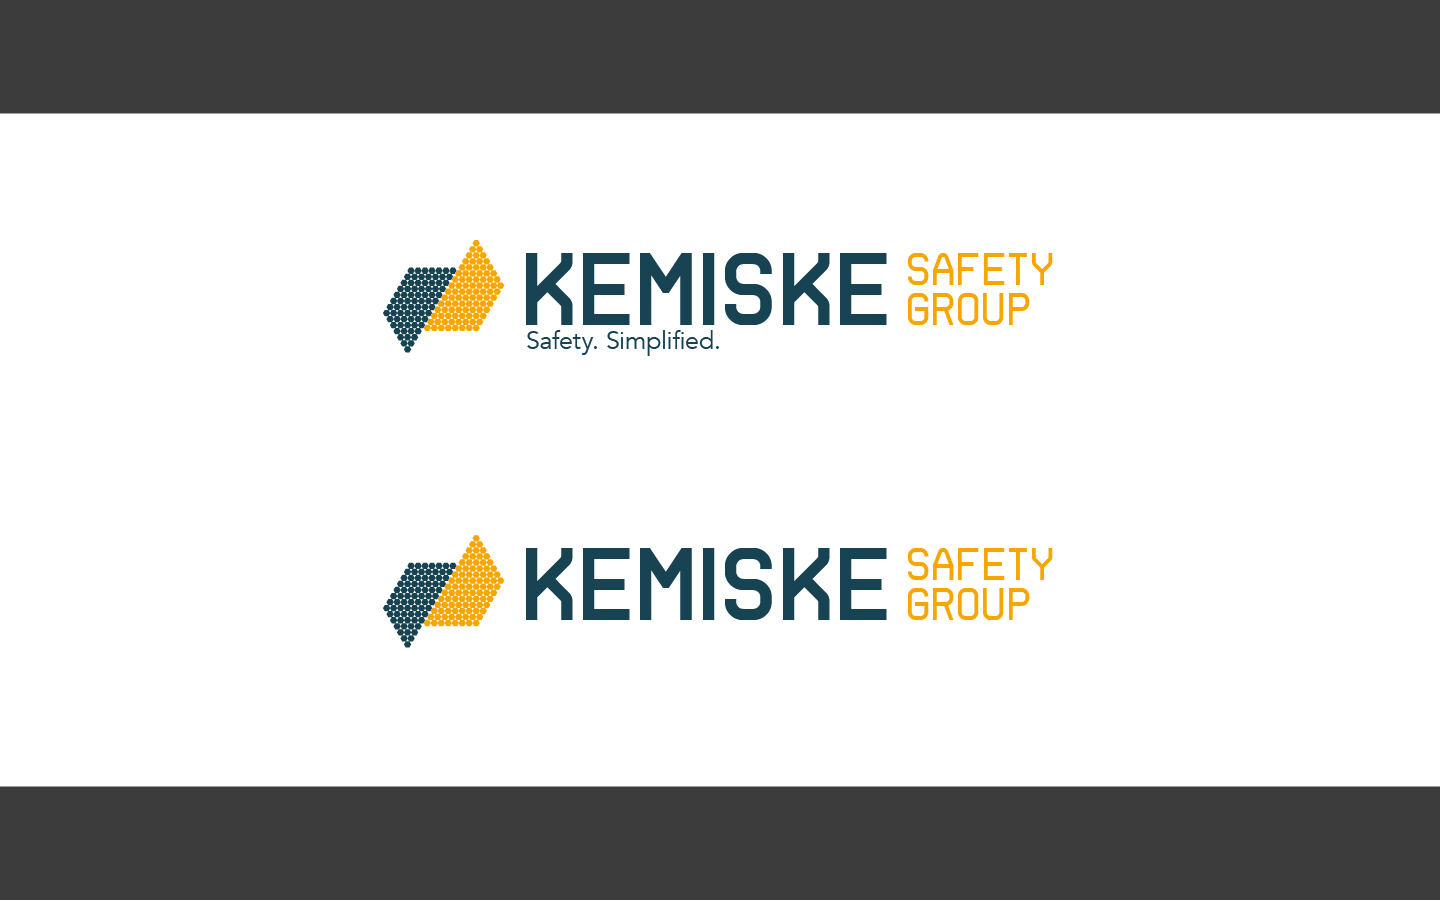 Logo Design by Lionel Lobo - Entry No. 162 in the Logo Design Contest New Logo Design for Kemiske Safety Group Inc..